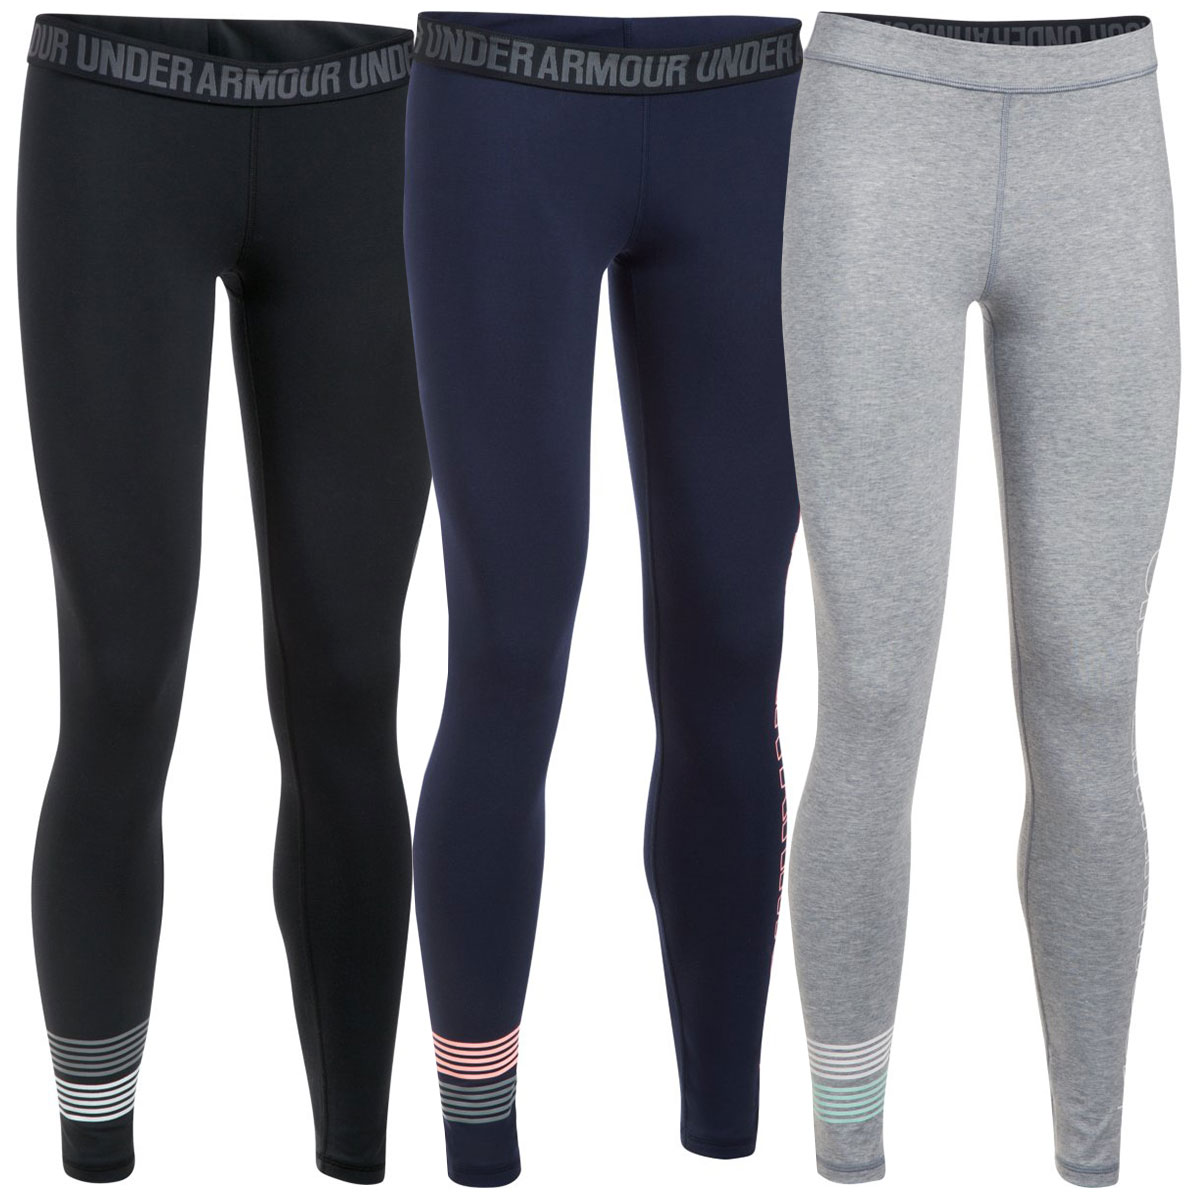 Under Armour Womens Favorite Graphic Gym Training Legging Bottoms 57/% OFF RRP